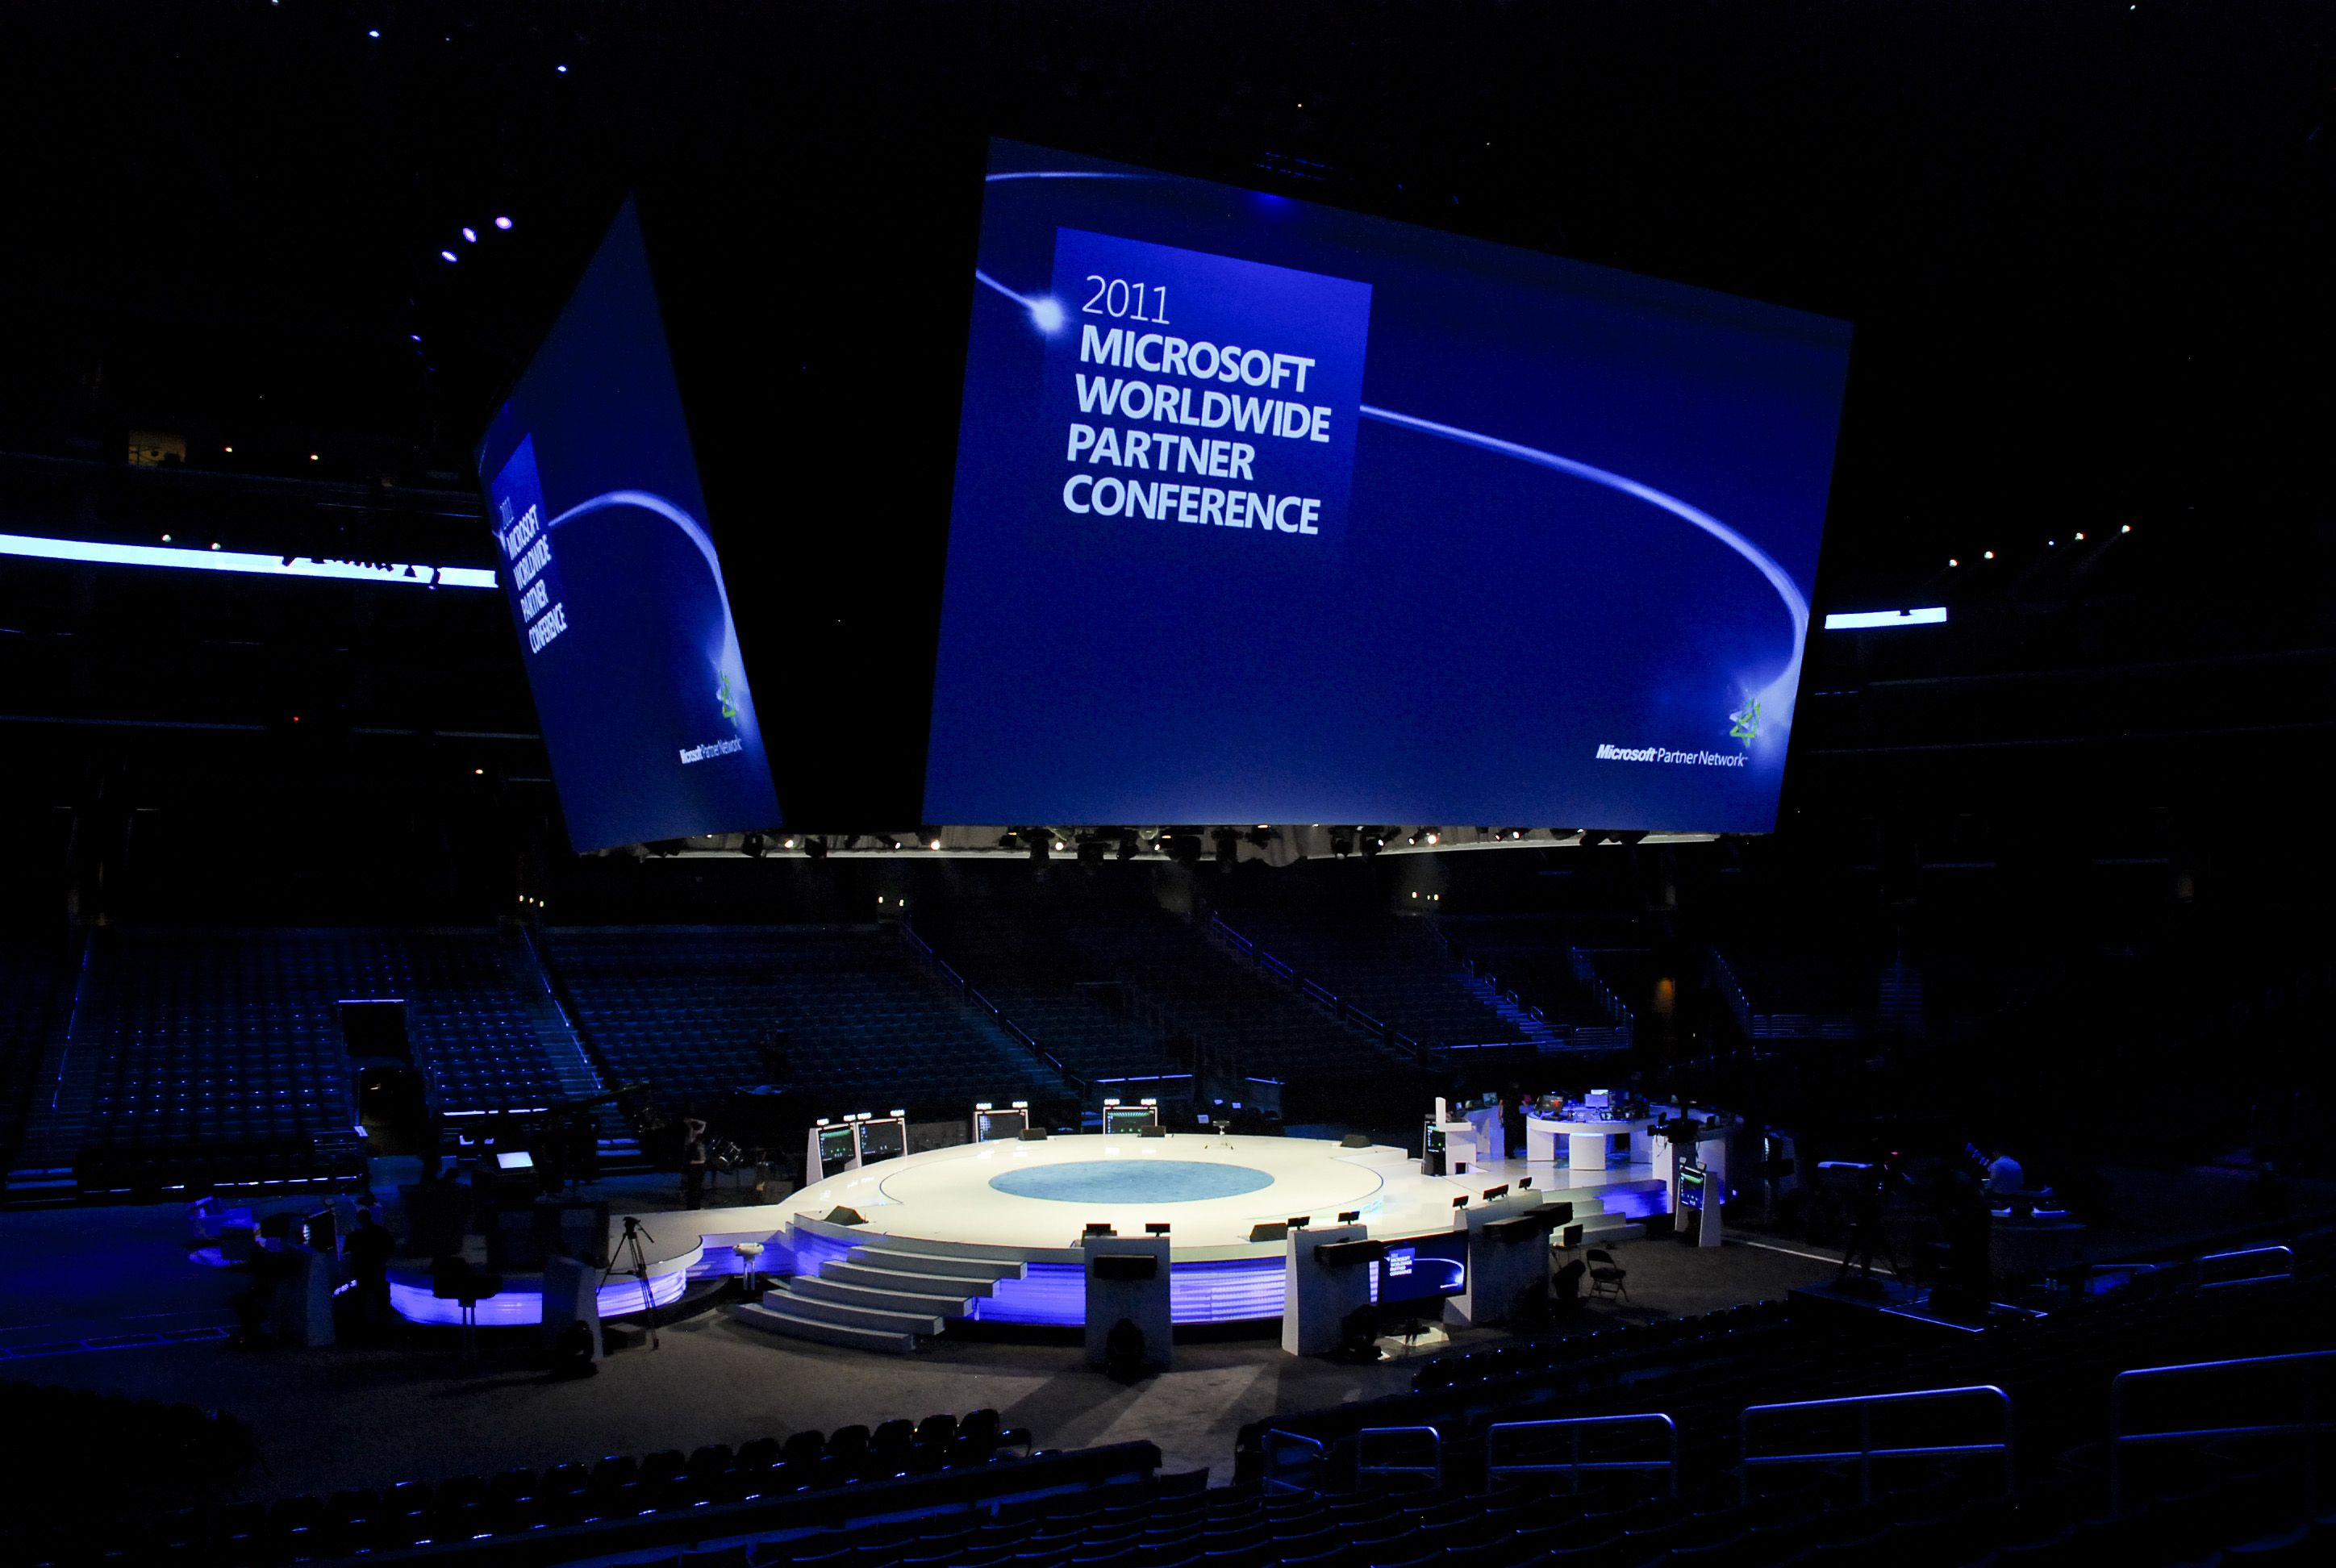 Nice vivid projection for Microsoft Wordlwide event. In the round too by the looks of it.